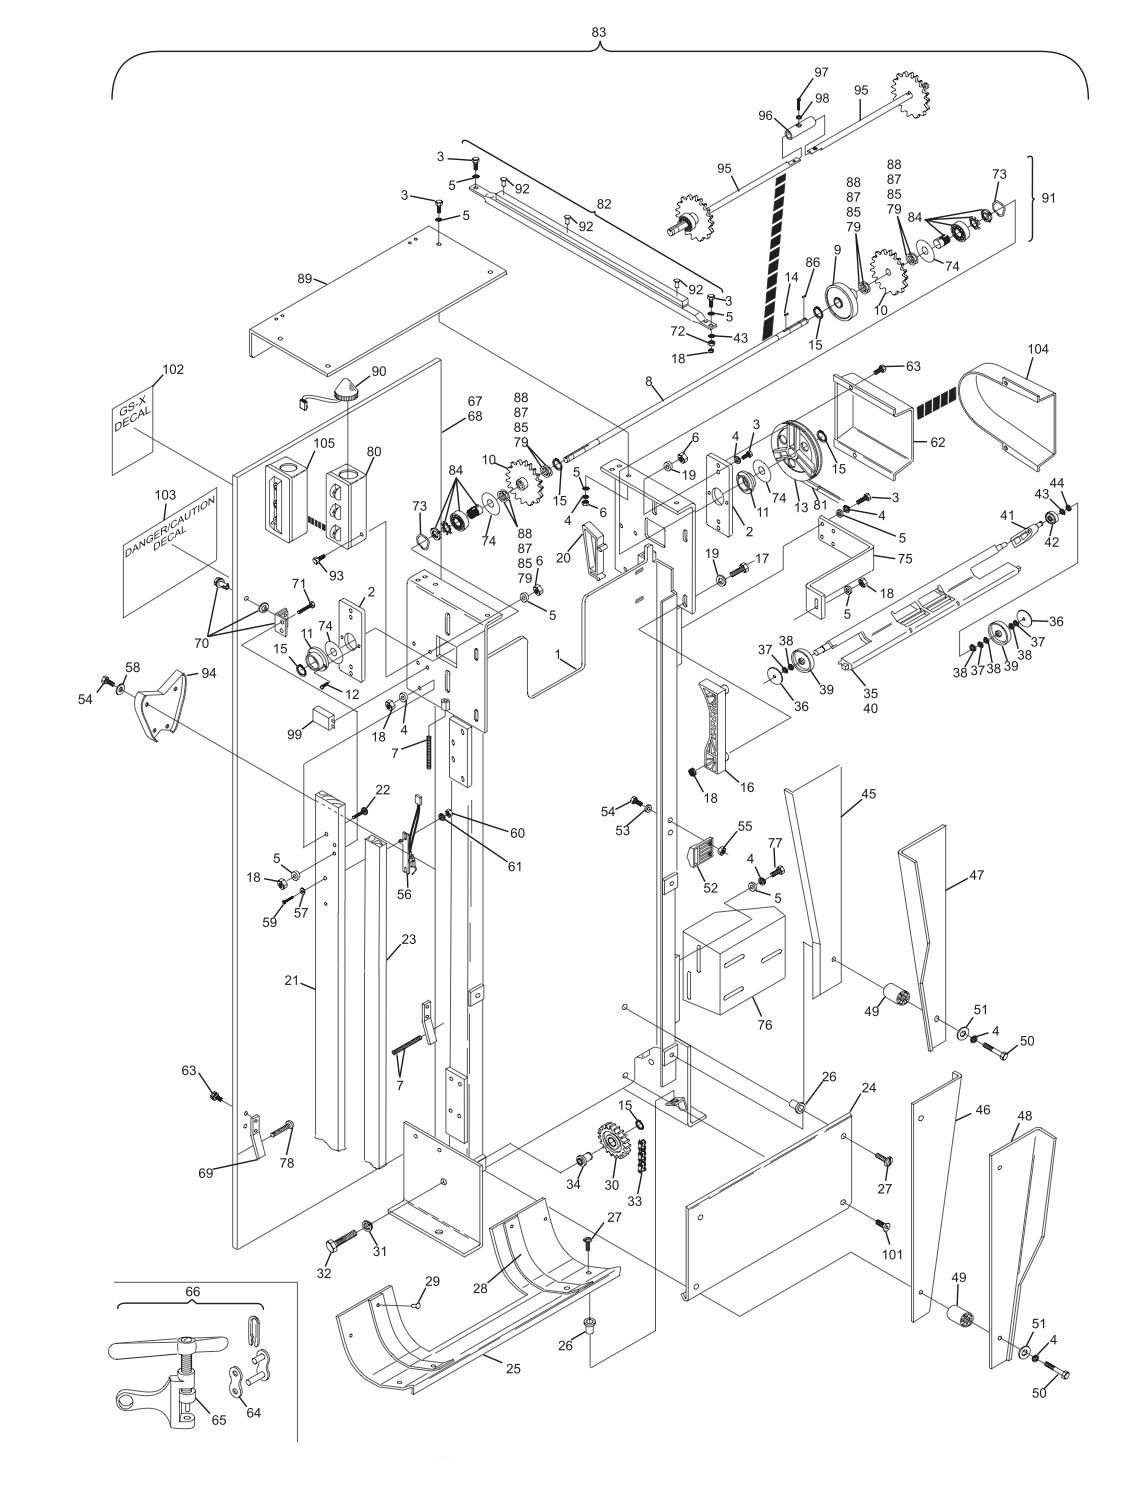 Elevator Assembly - Square Frame Hole Short Pit Machines Series 43 and Above